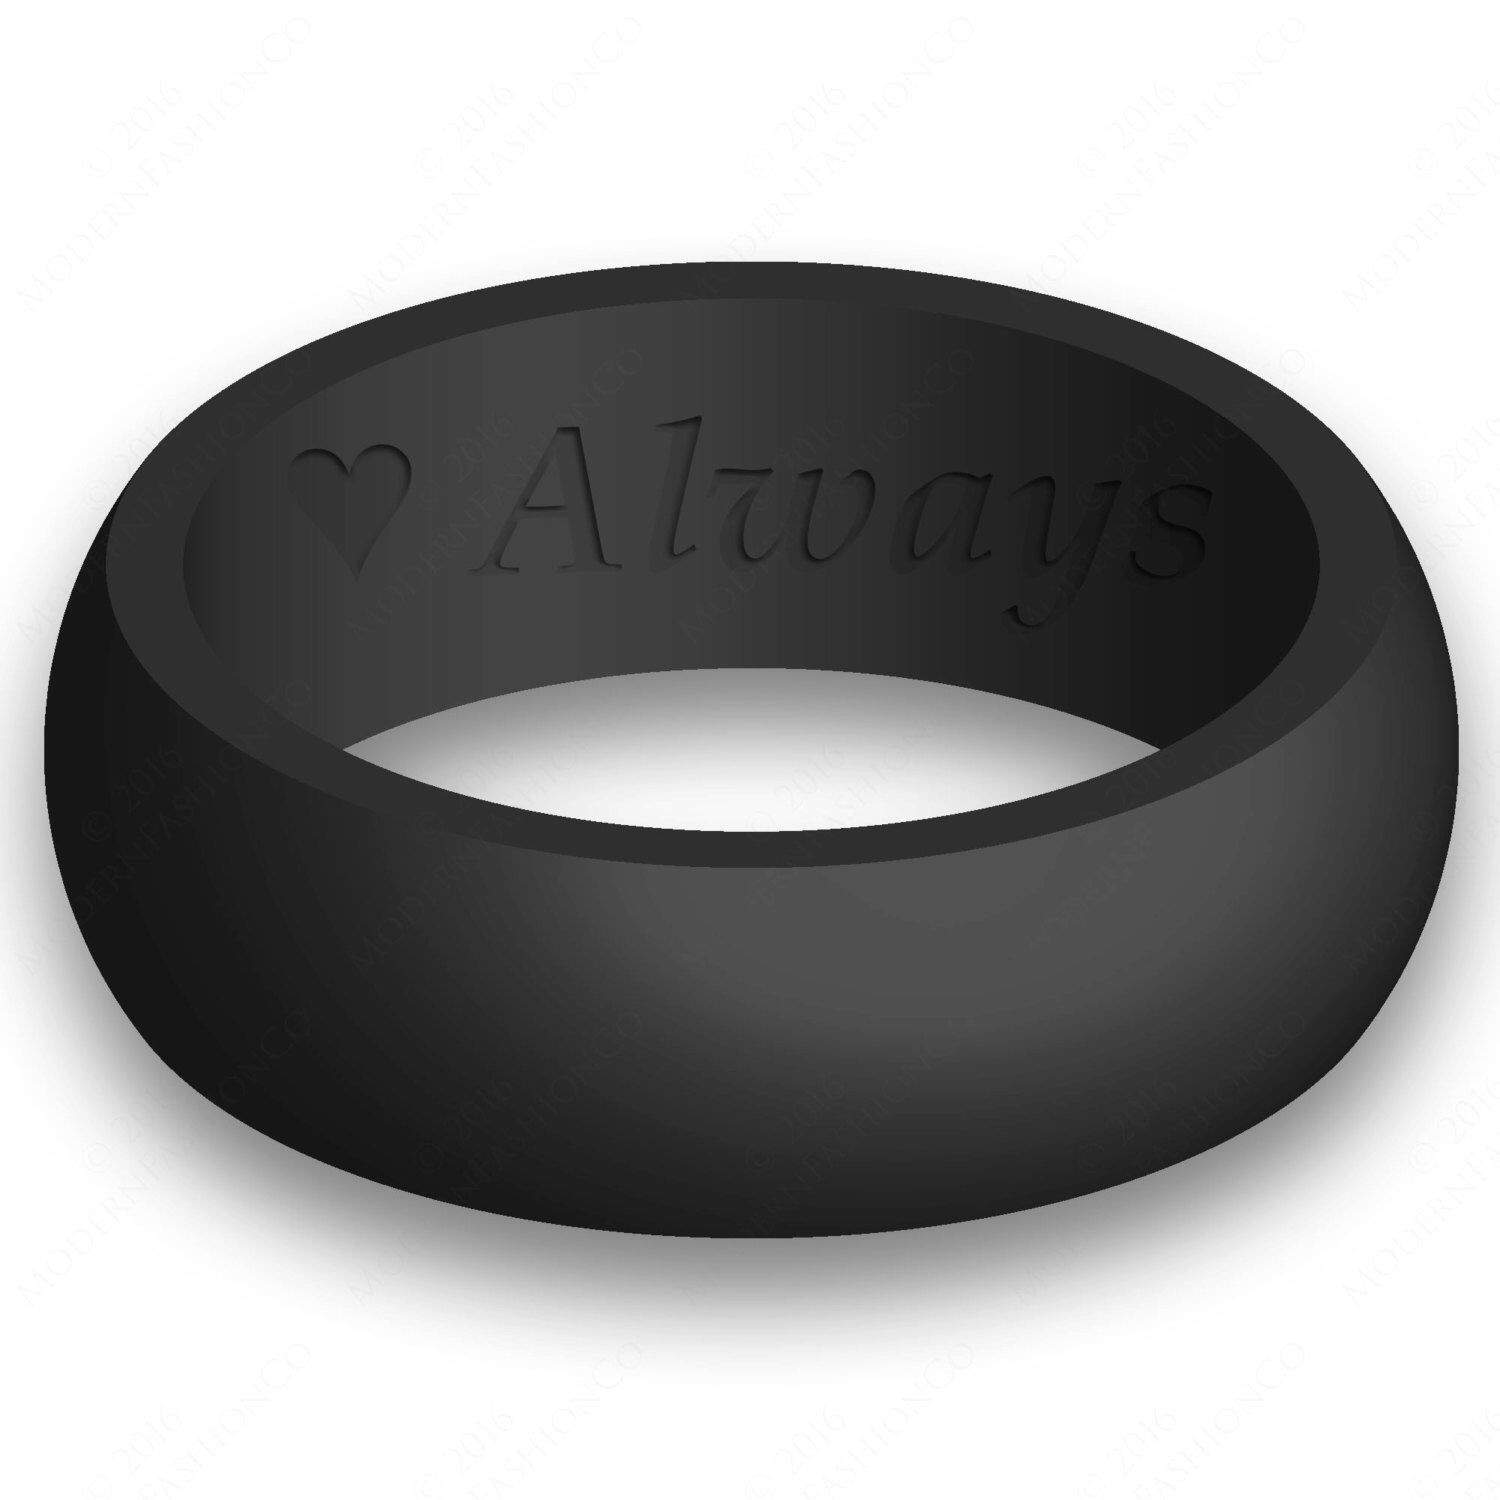 rubber mens wedding band Custom Engraving Mens Silicone Wedding Ring Band Flexible Hypoallergenic Safety Rubber Modern Athletic Active Wear Man Jewelry